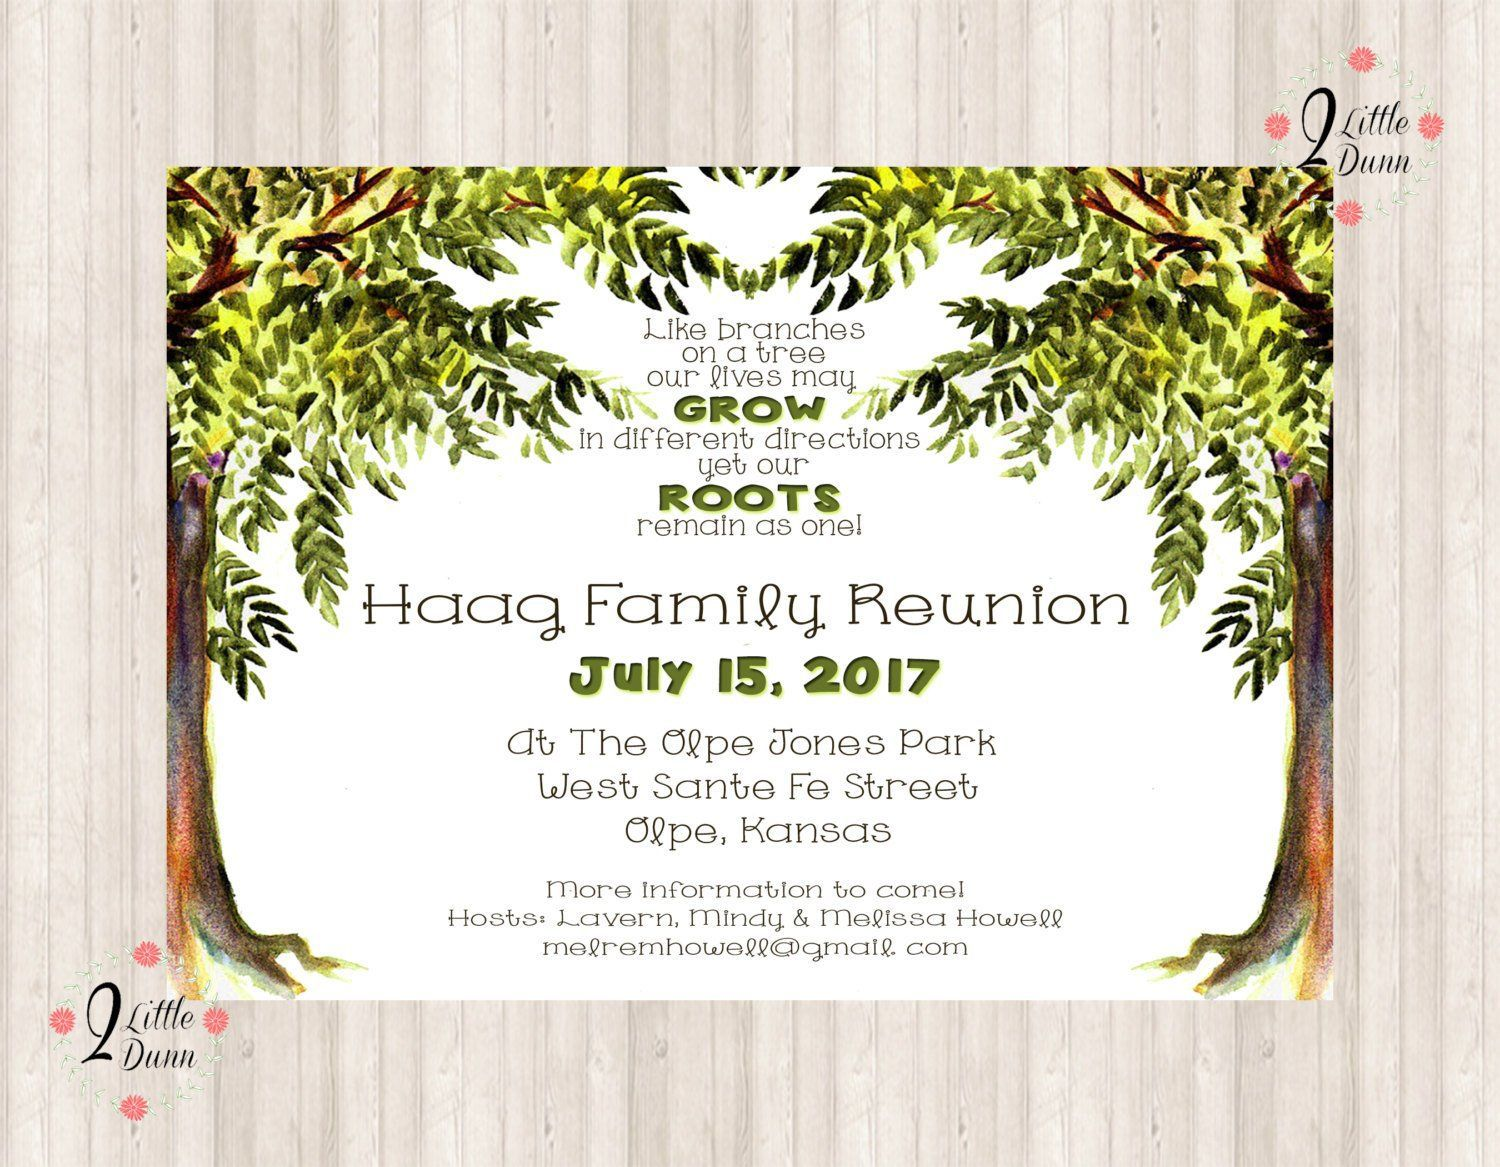 007 Simple Family Reunion Invitation Template Free Highest Quality  For Word OnlineFull